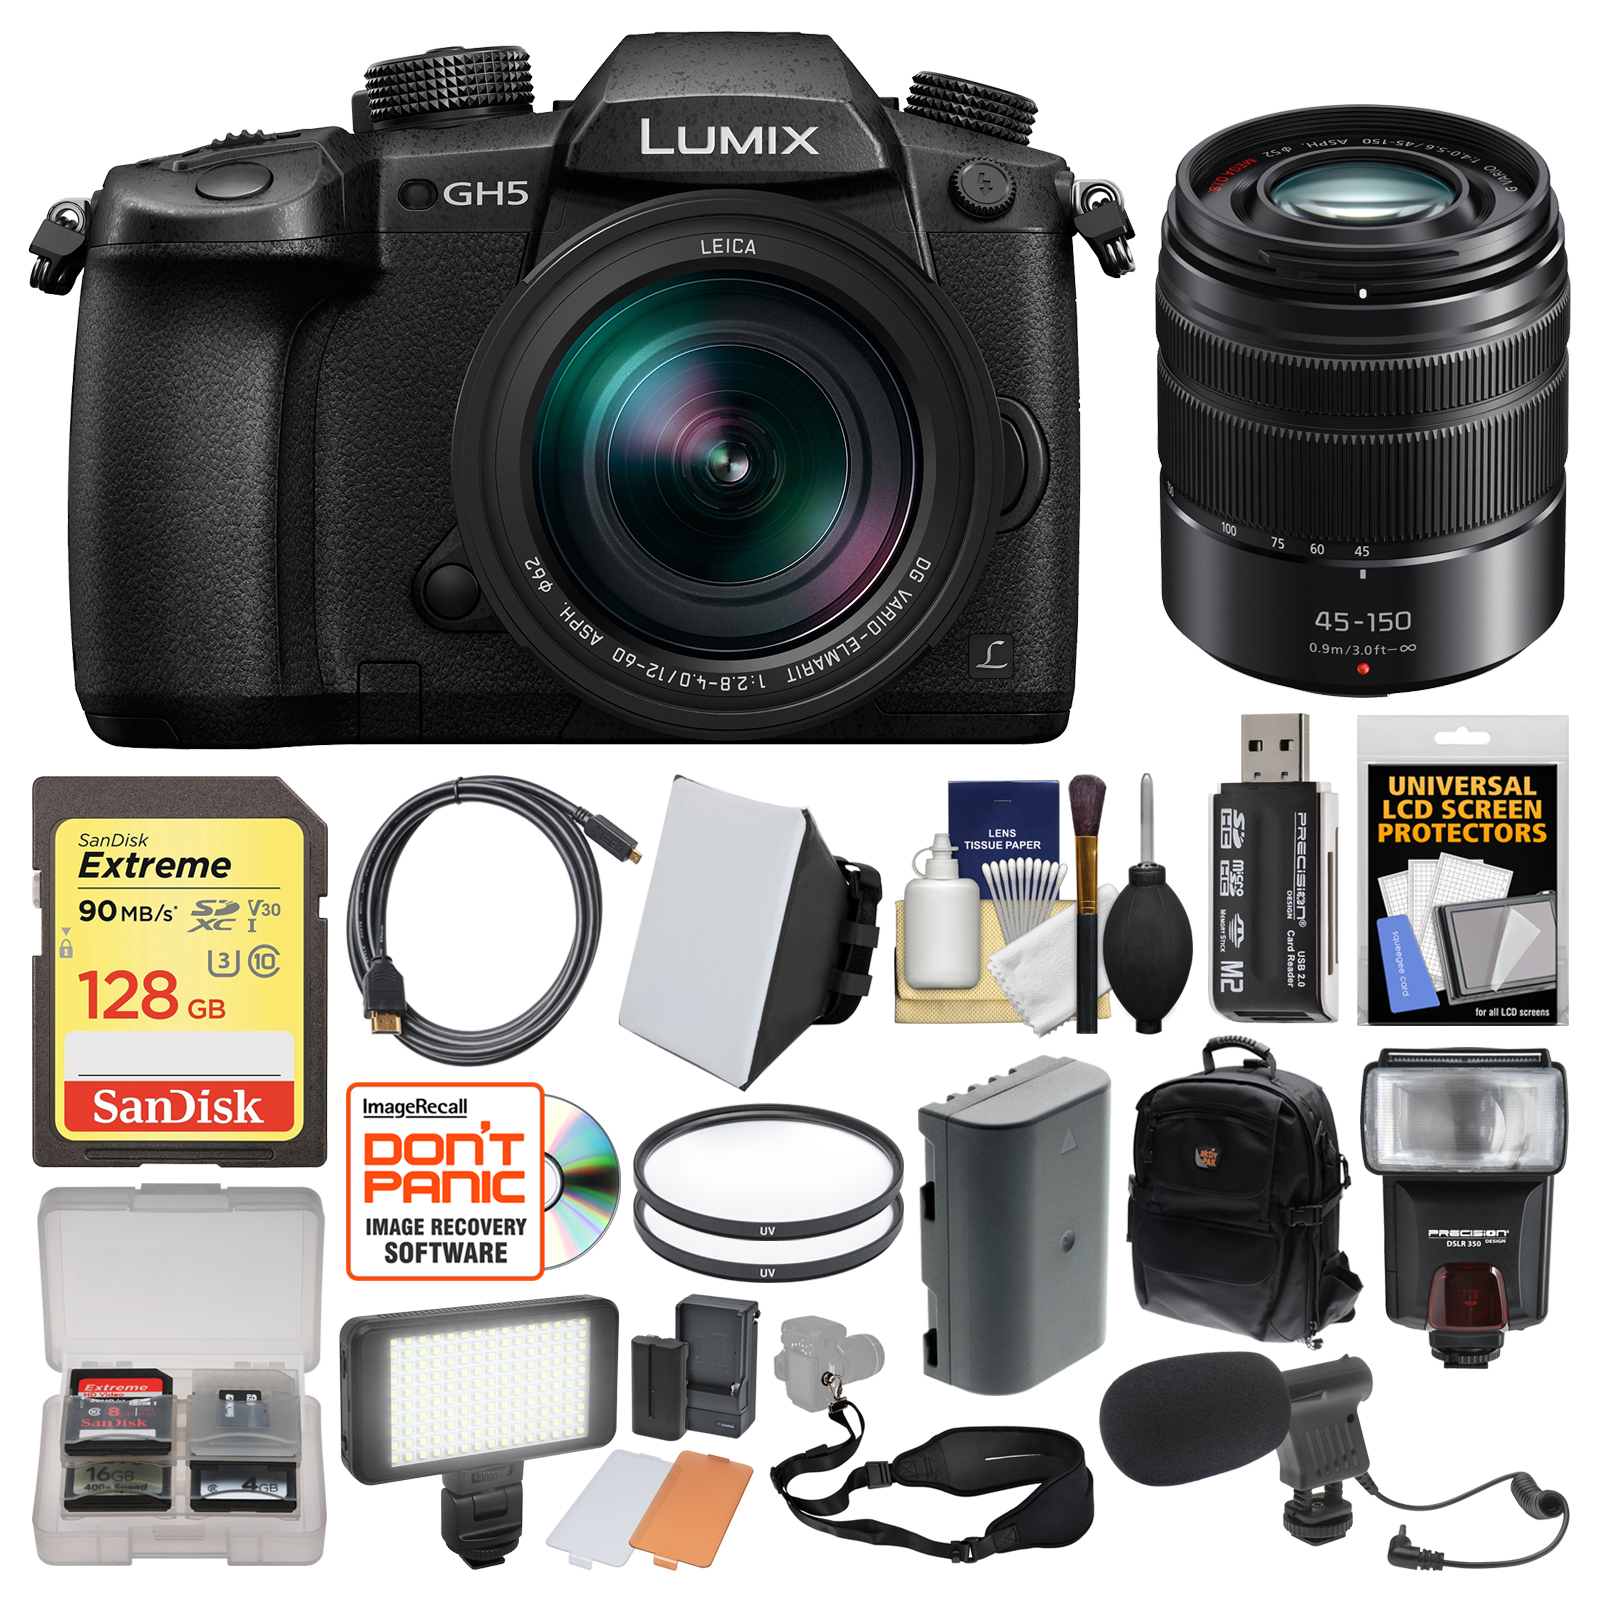 Panasonic Lumix DC-GH5 Wi-Fi 4K Digital Camera & 12-60mm f 2.8-4.0 with 45-150mm Lens + 128GB Card + Backpack... by Panasonic